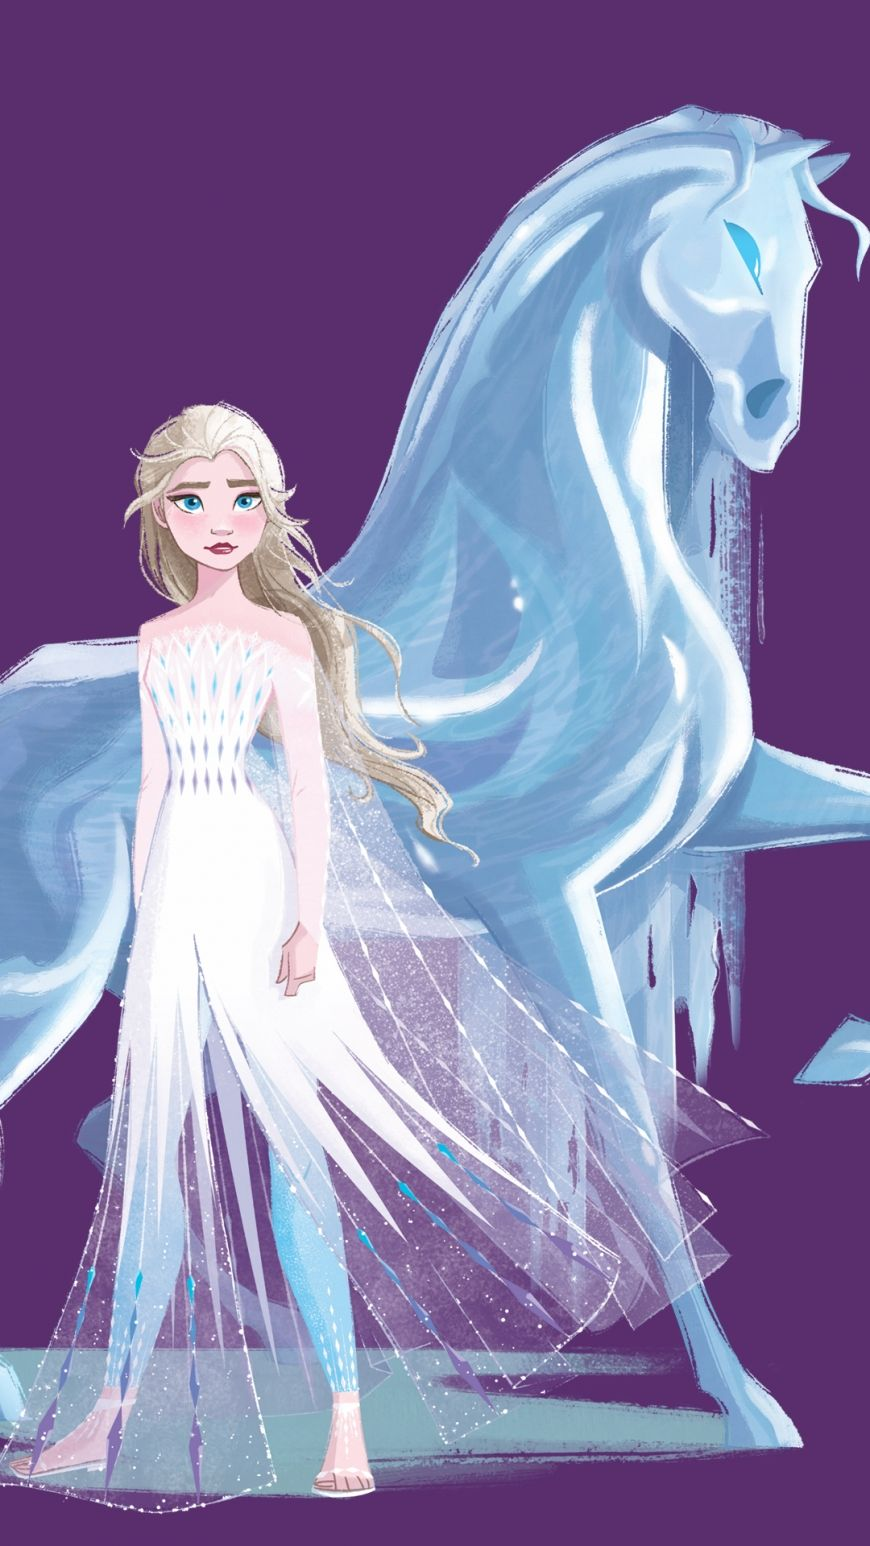 Frozen 2 Hd Background Elsa White Dress Nokk In 2020 Disney Princess Pictures Disney Princess Drawings Disney Princess Frozen